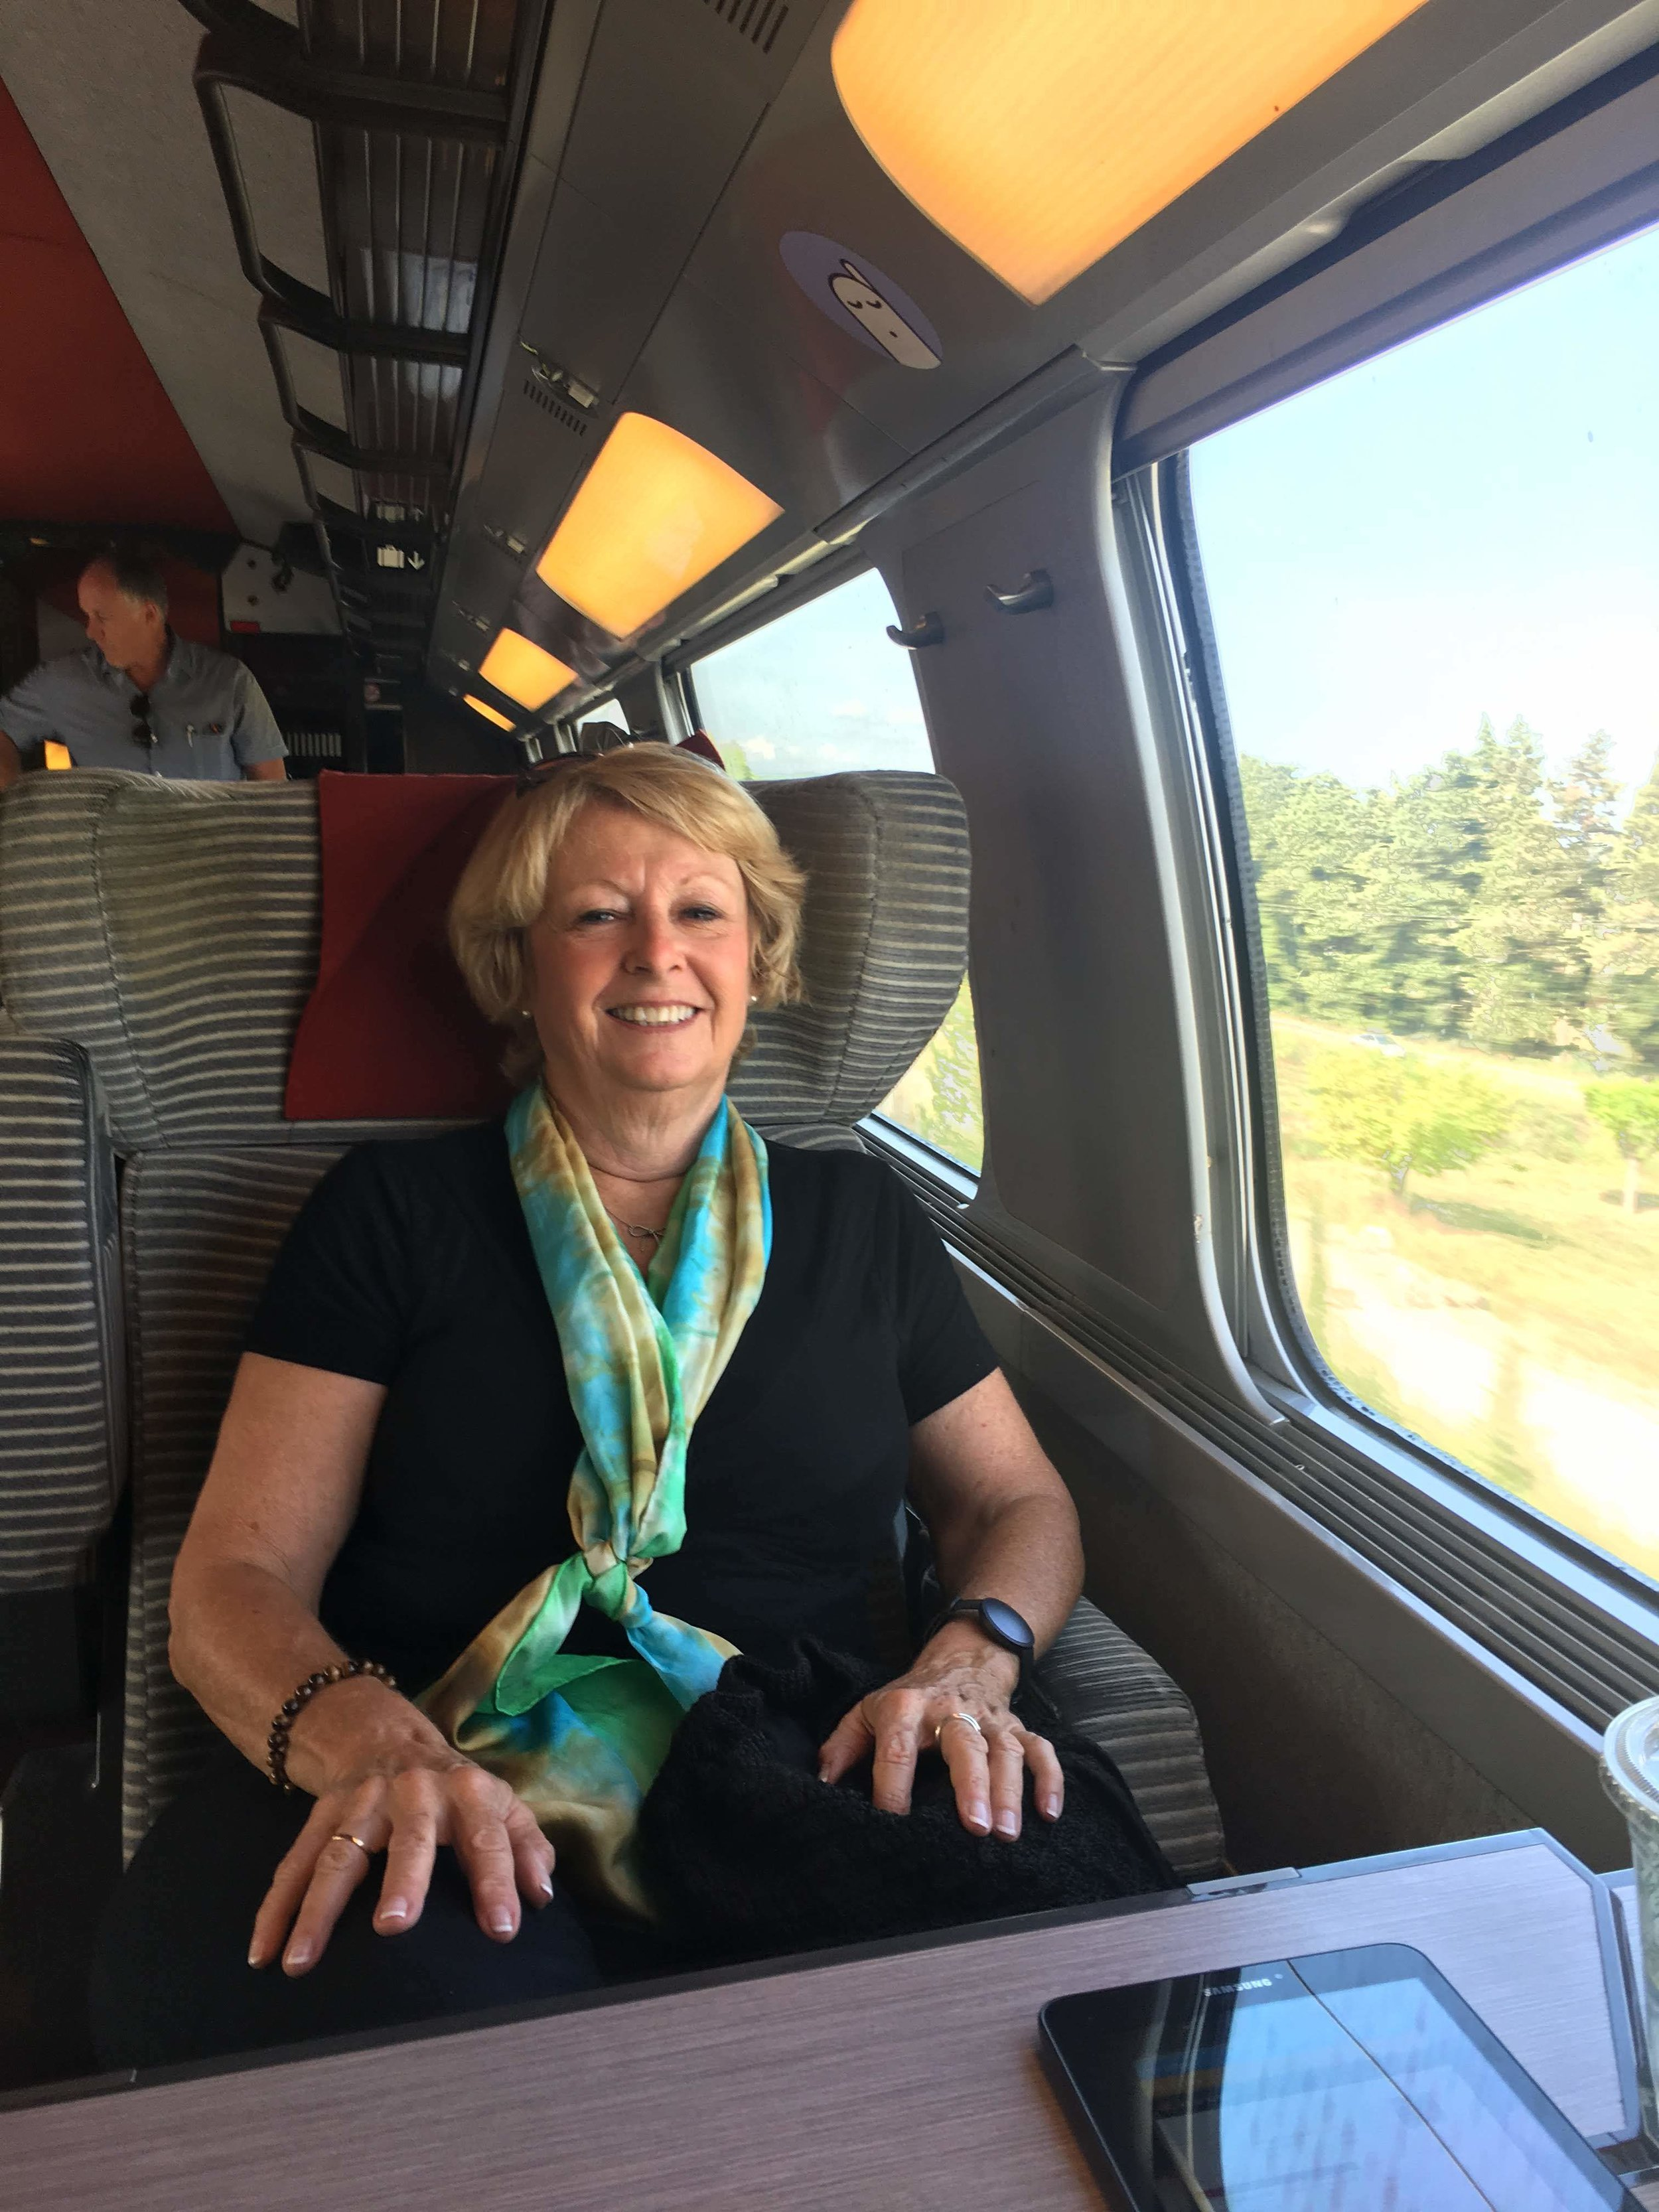 As you can see, Carol embraced the comfort and luxury of first class European train travel.